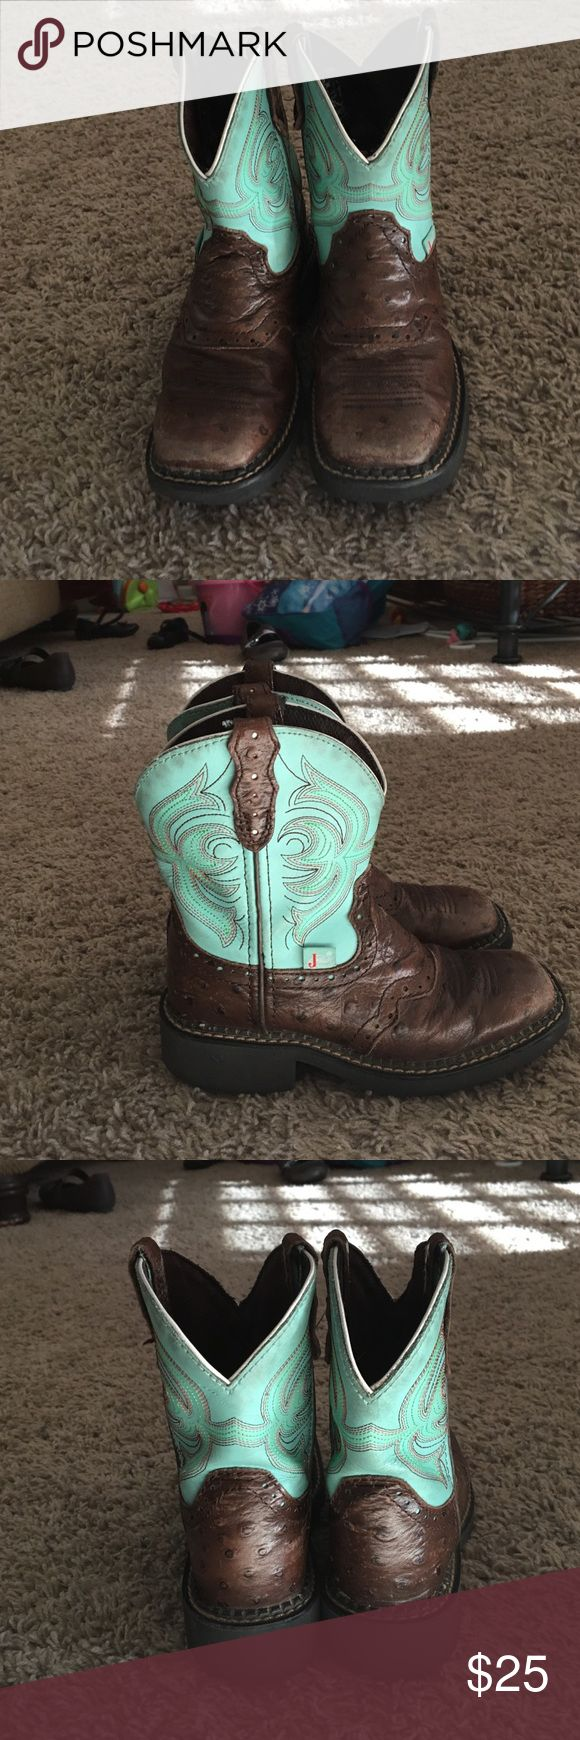 Toddler size Justin boot Cute Justin boot size 11D toddler GUC Justin Boots Shoes Boots